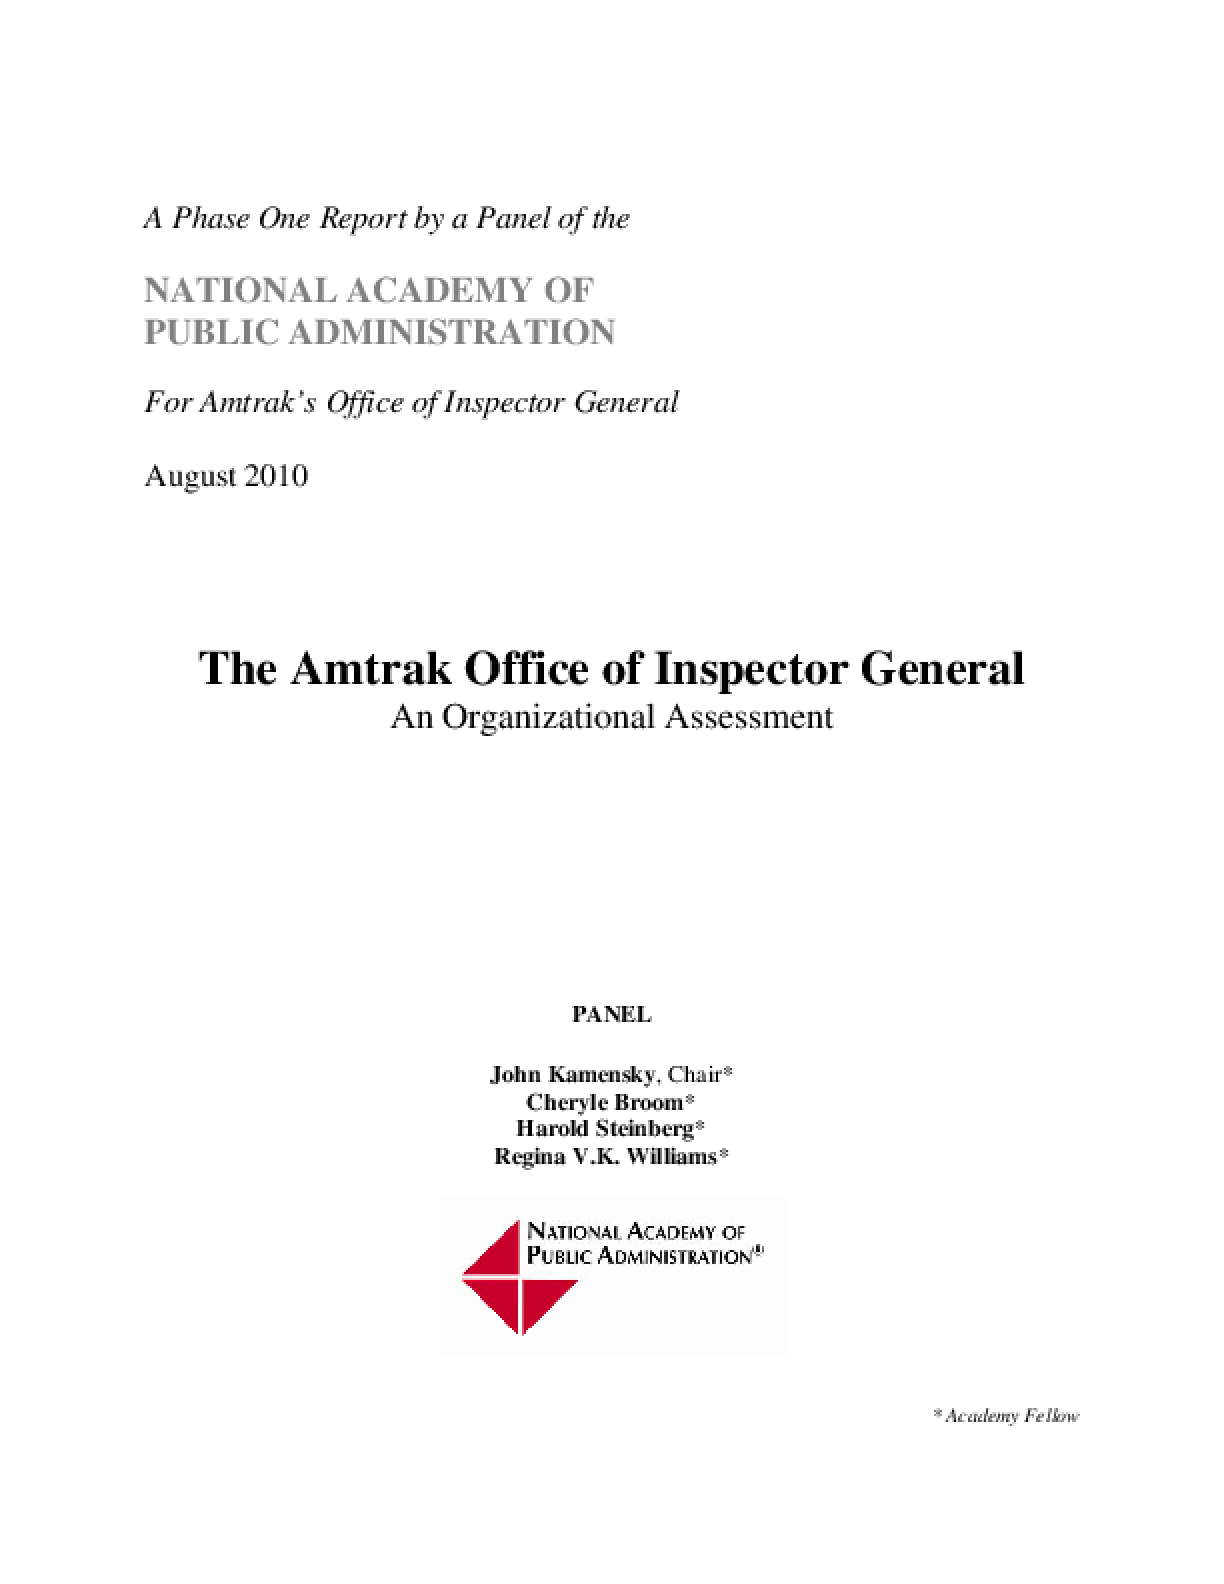 Amtrak Office of Inspector General: Organizational Assessment